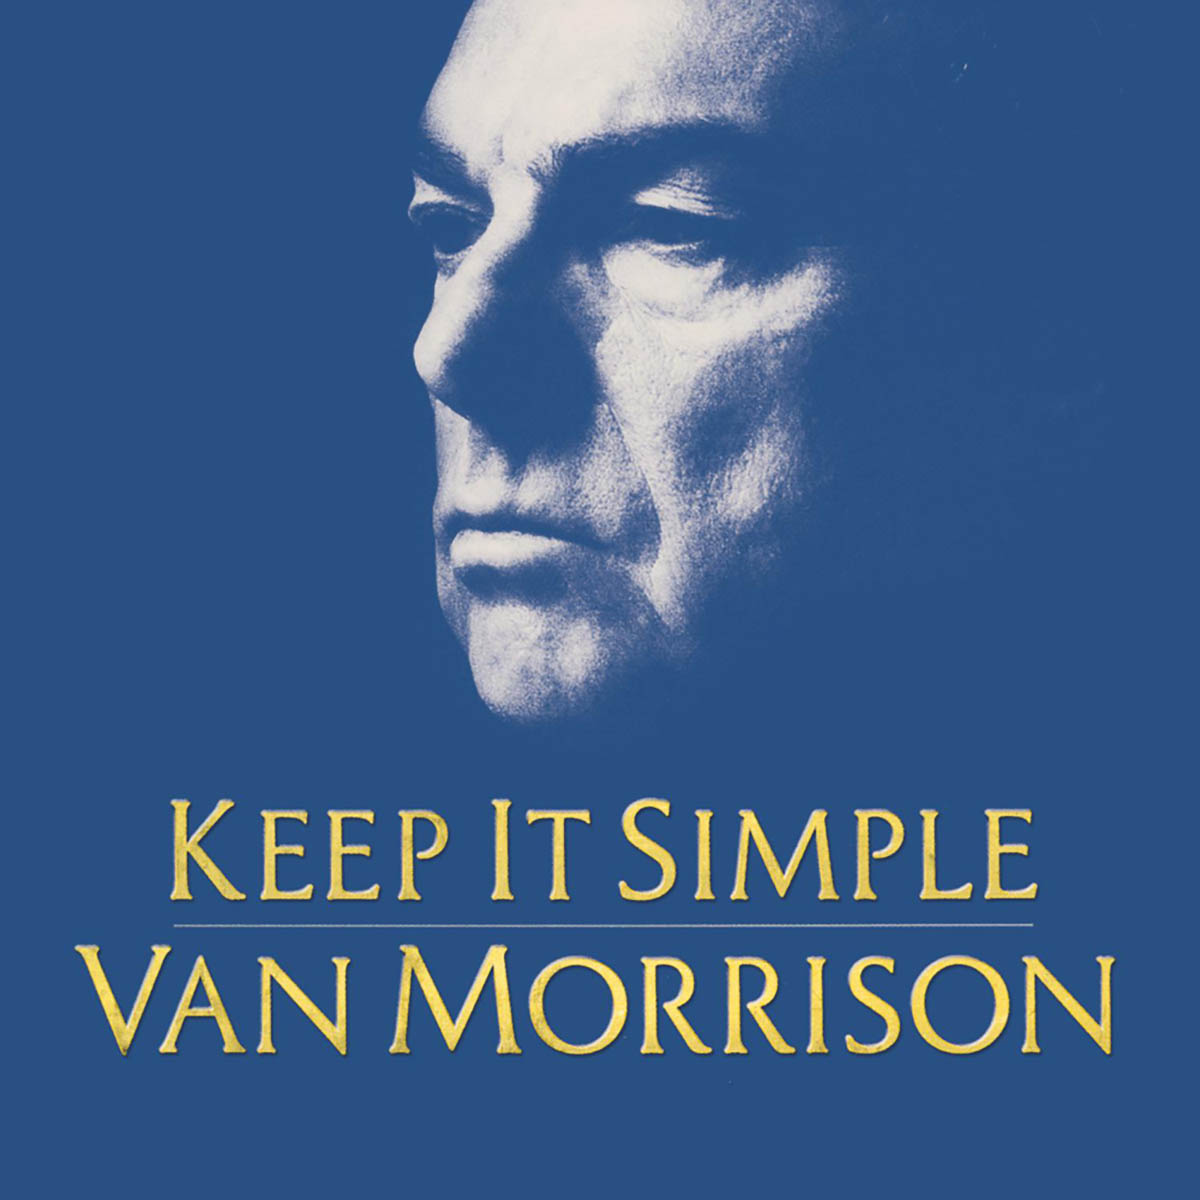 Van Morrison, Keep It Simple